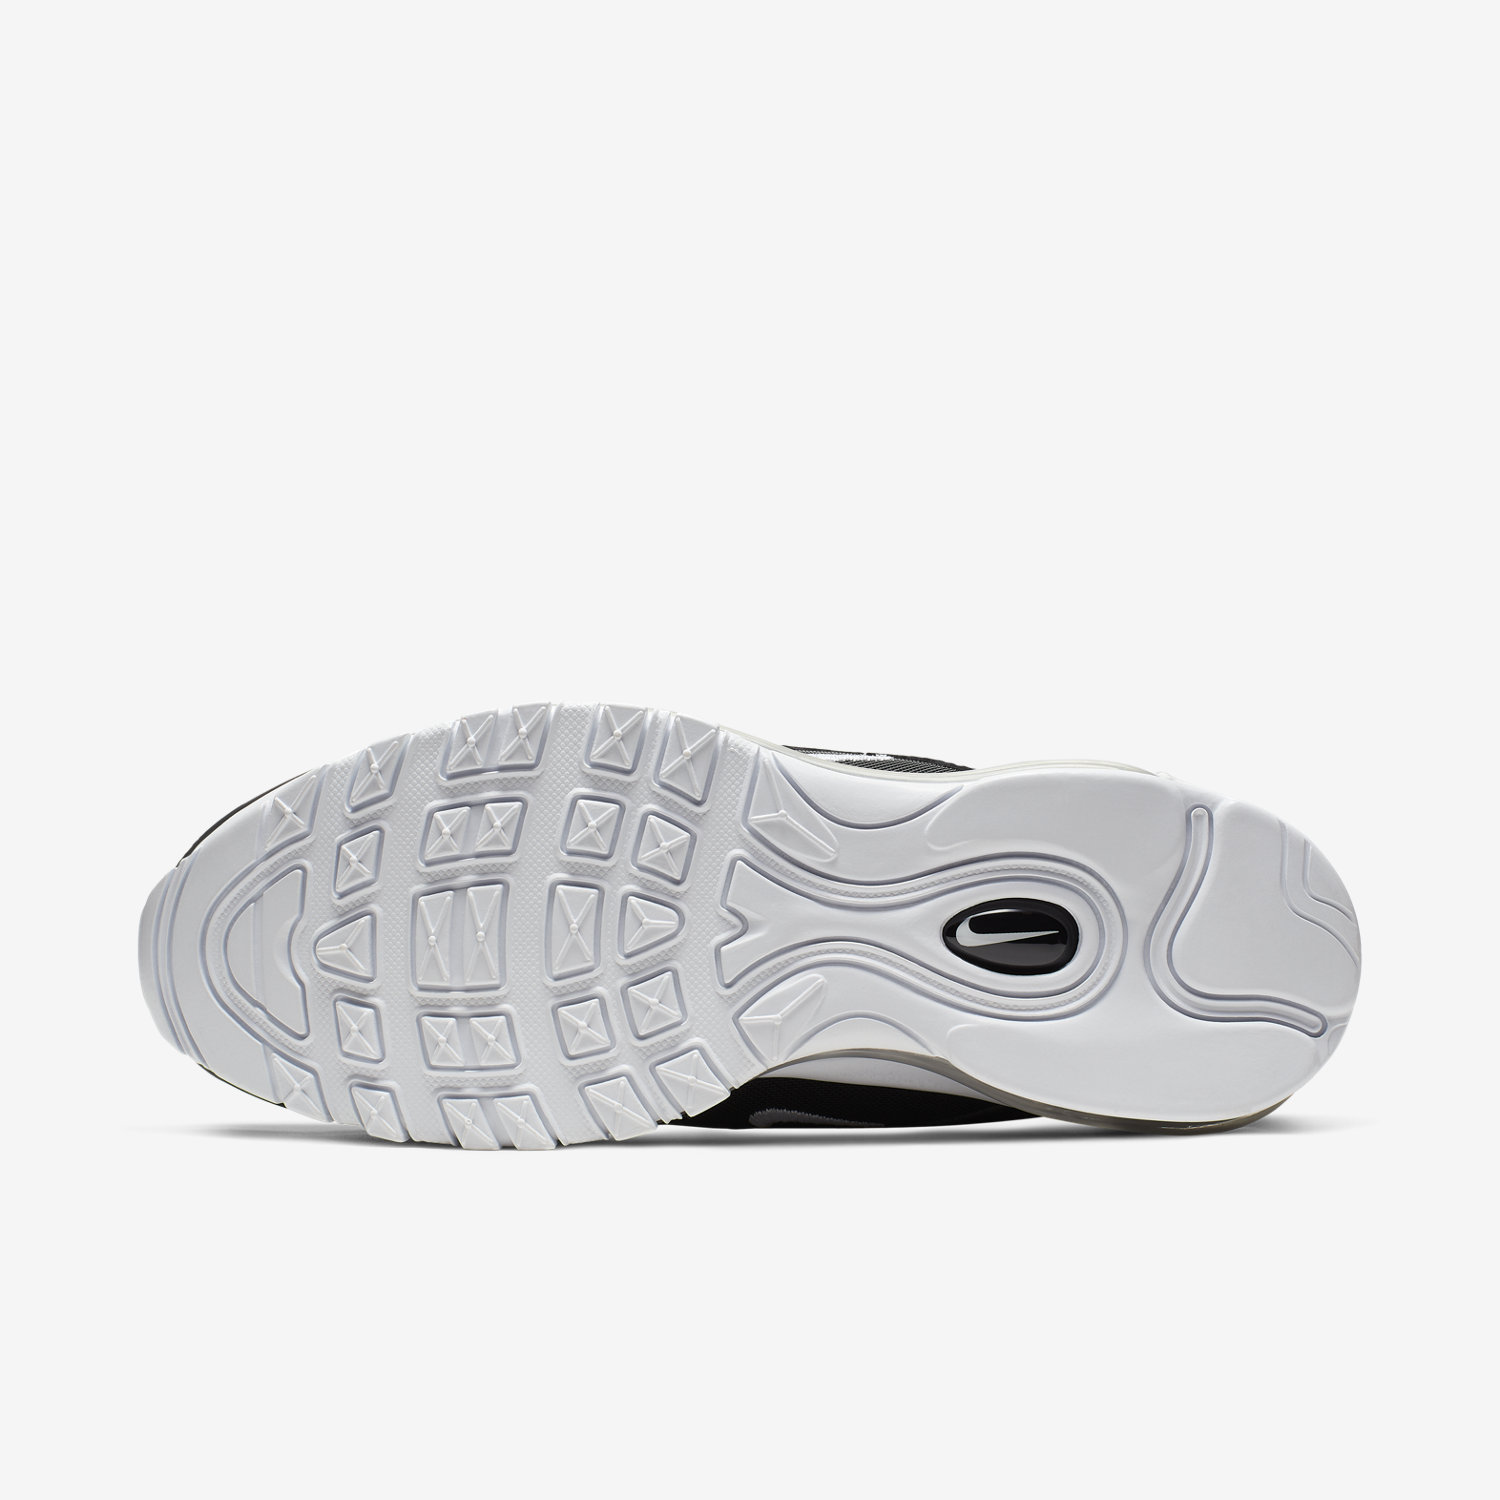 separation shoes e5c28 c11d1 ... clearance air max 97 cheapup to 44 discounts 55759 ae5ef australia nikes  ...